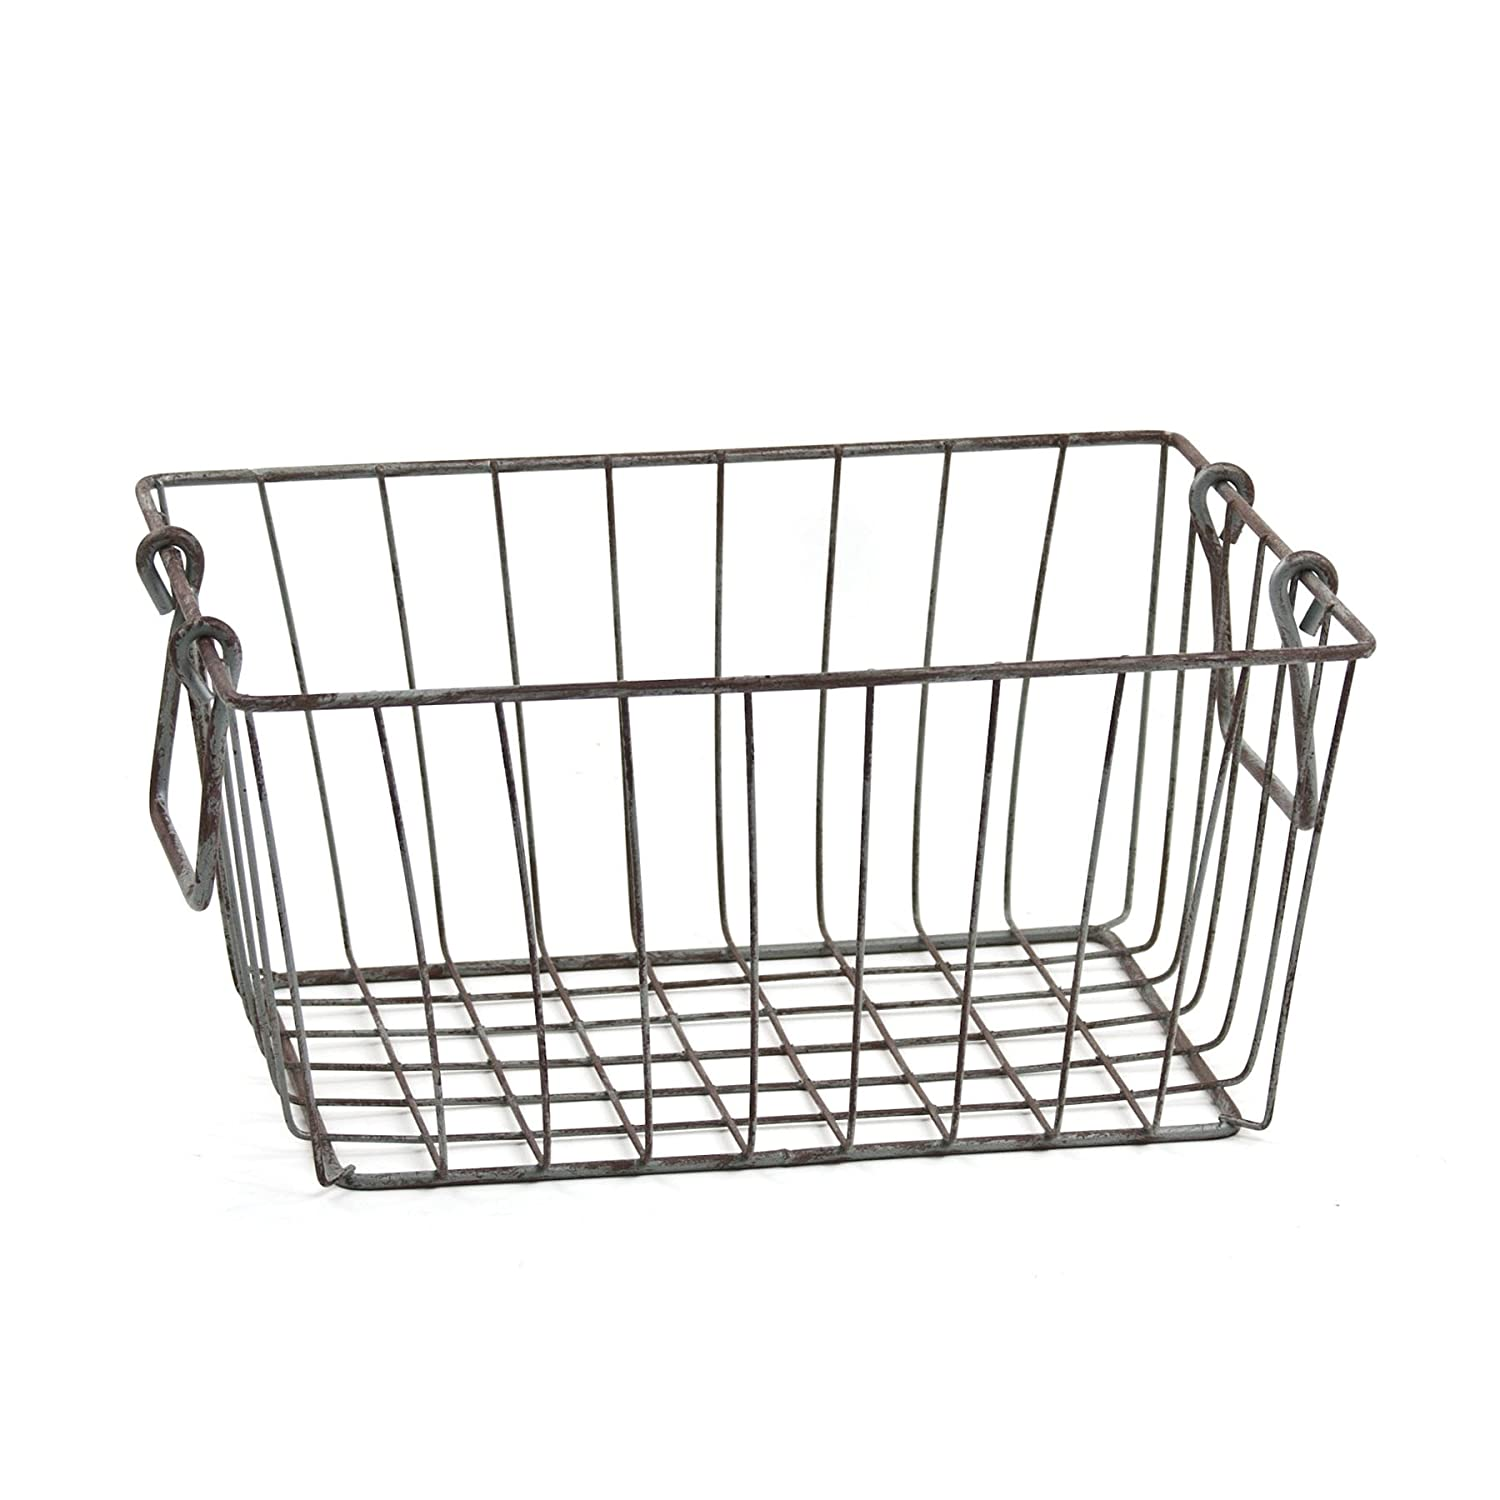 Amazon.com: Skalny Rectangle Wire Storage Container, 10 x 5.5 x 4.5 ...